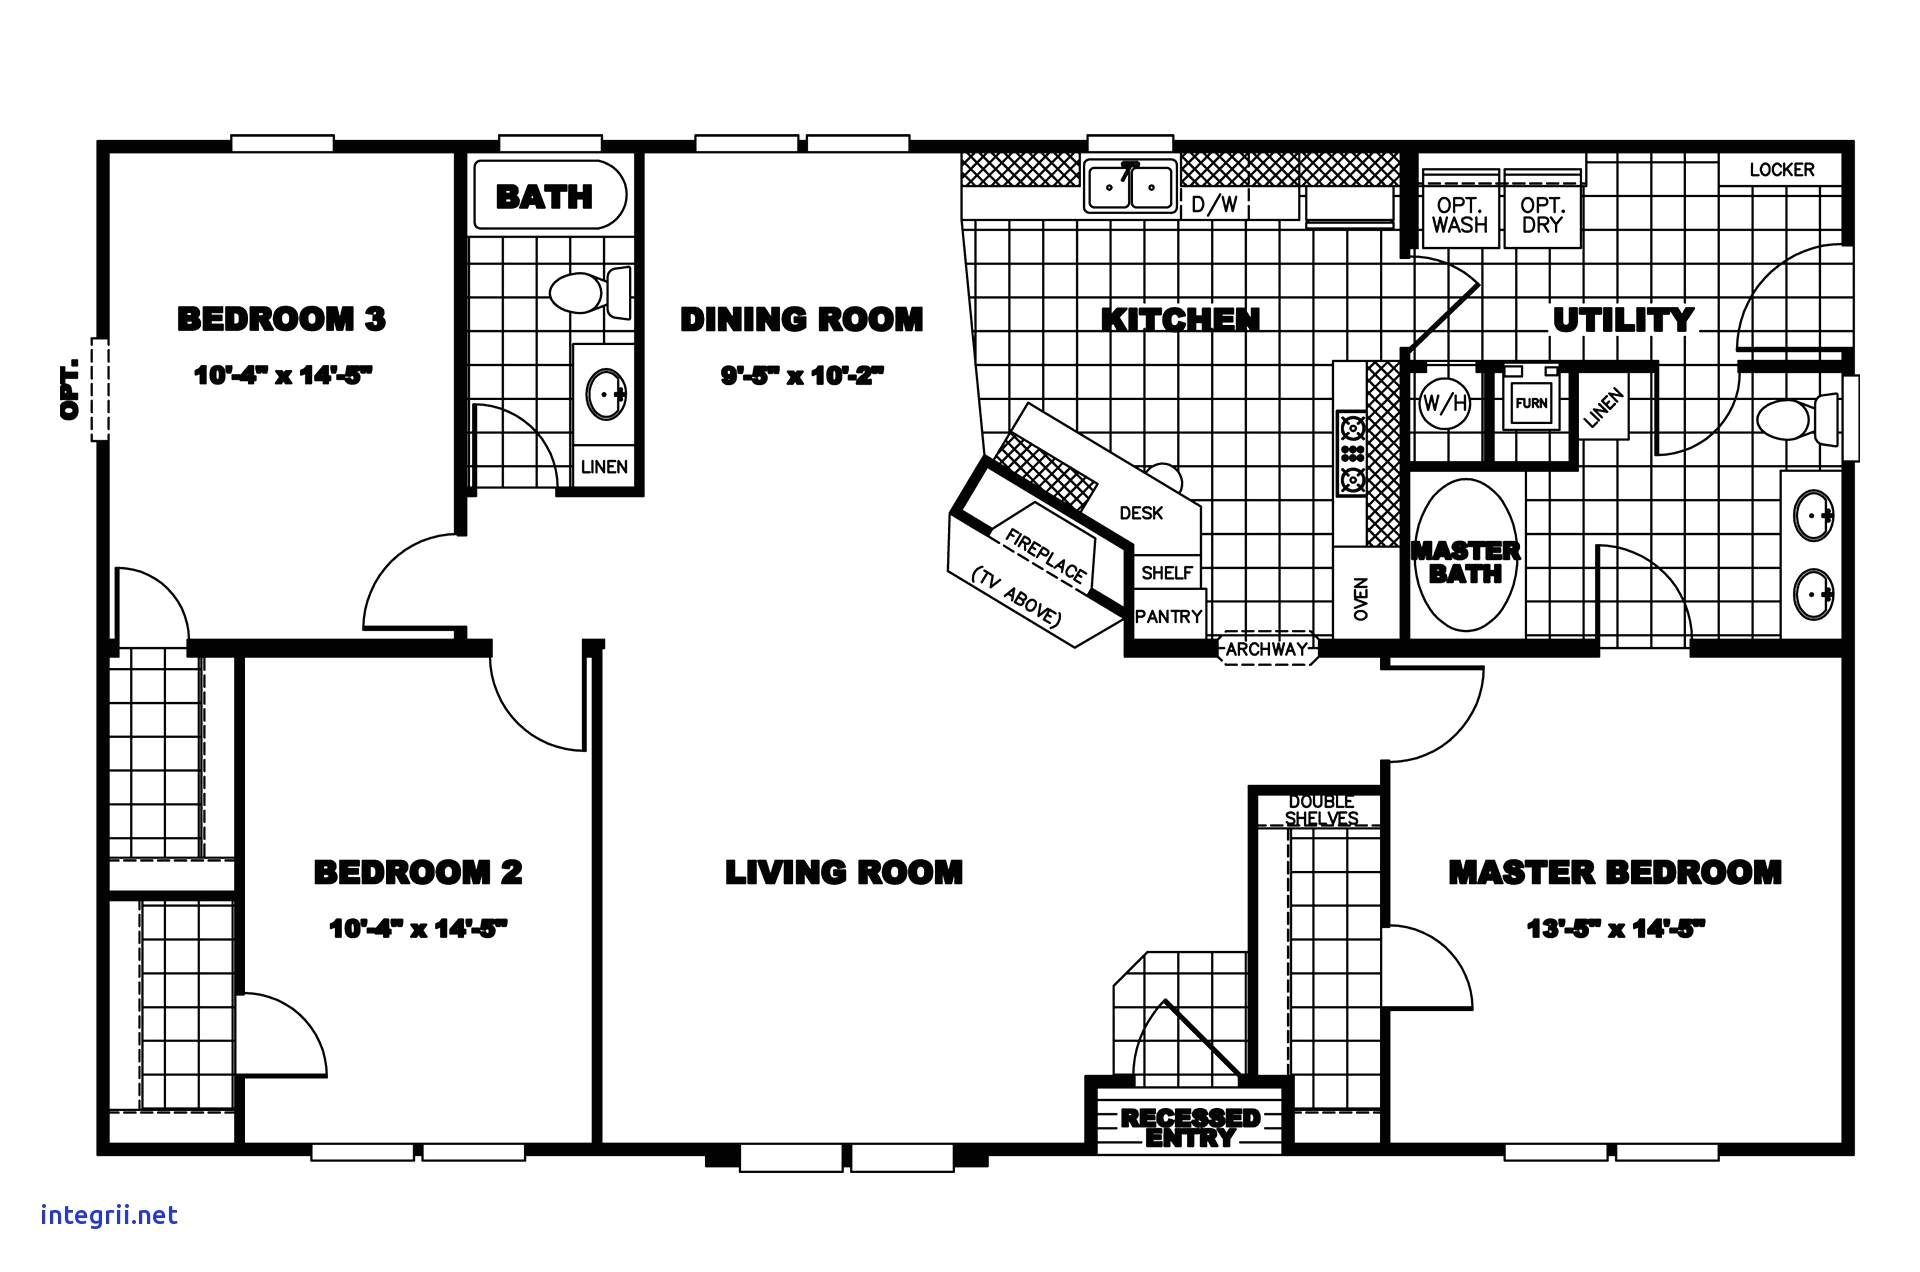 24x36 2 Story House Plans Modular Home Floor Plans Mobile Home Floor Plans House Plans 2 Story